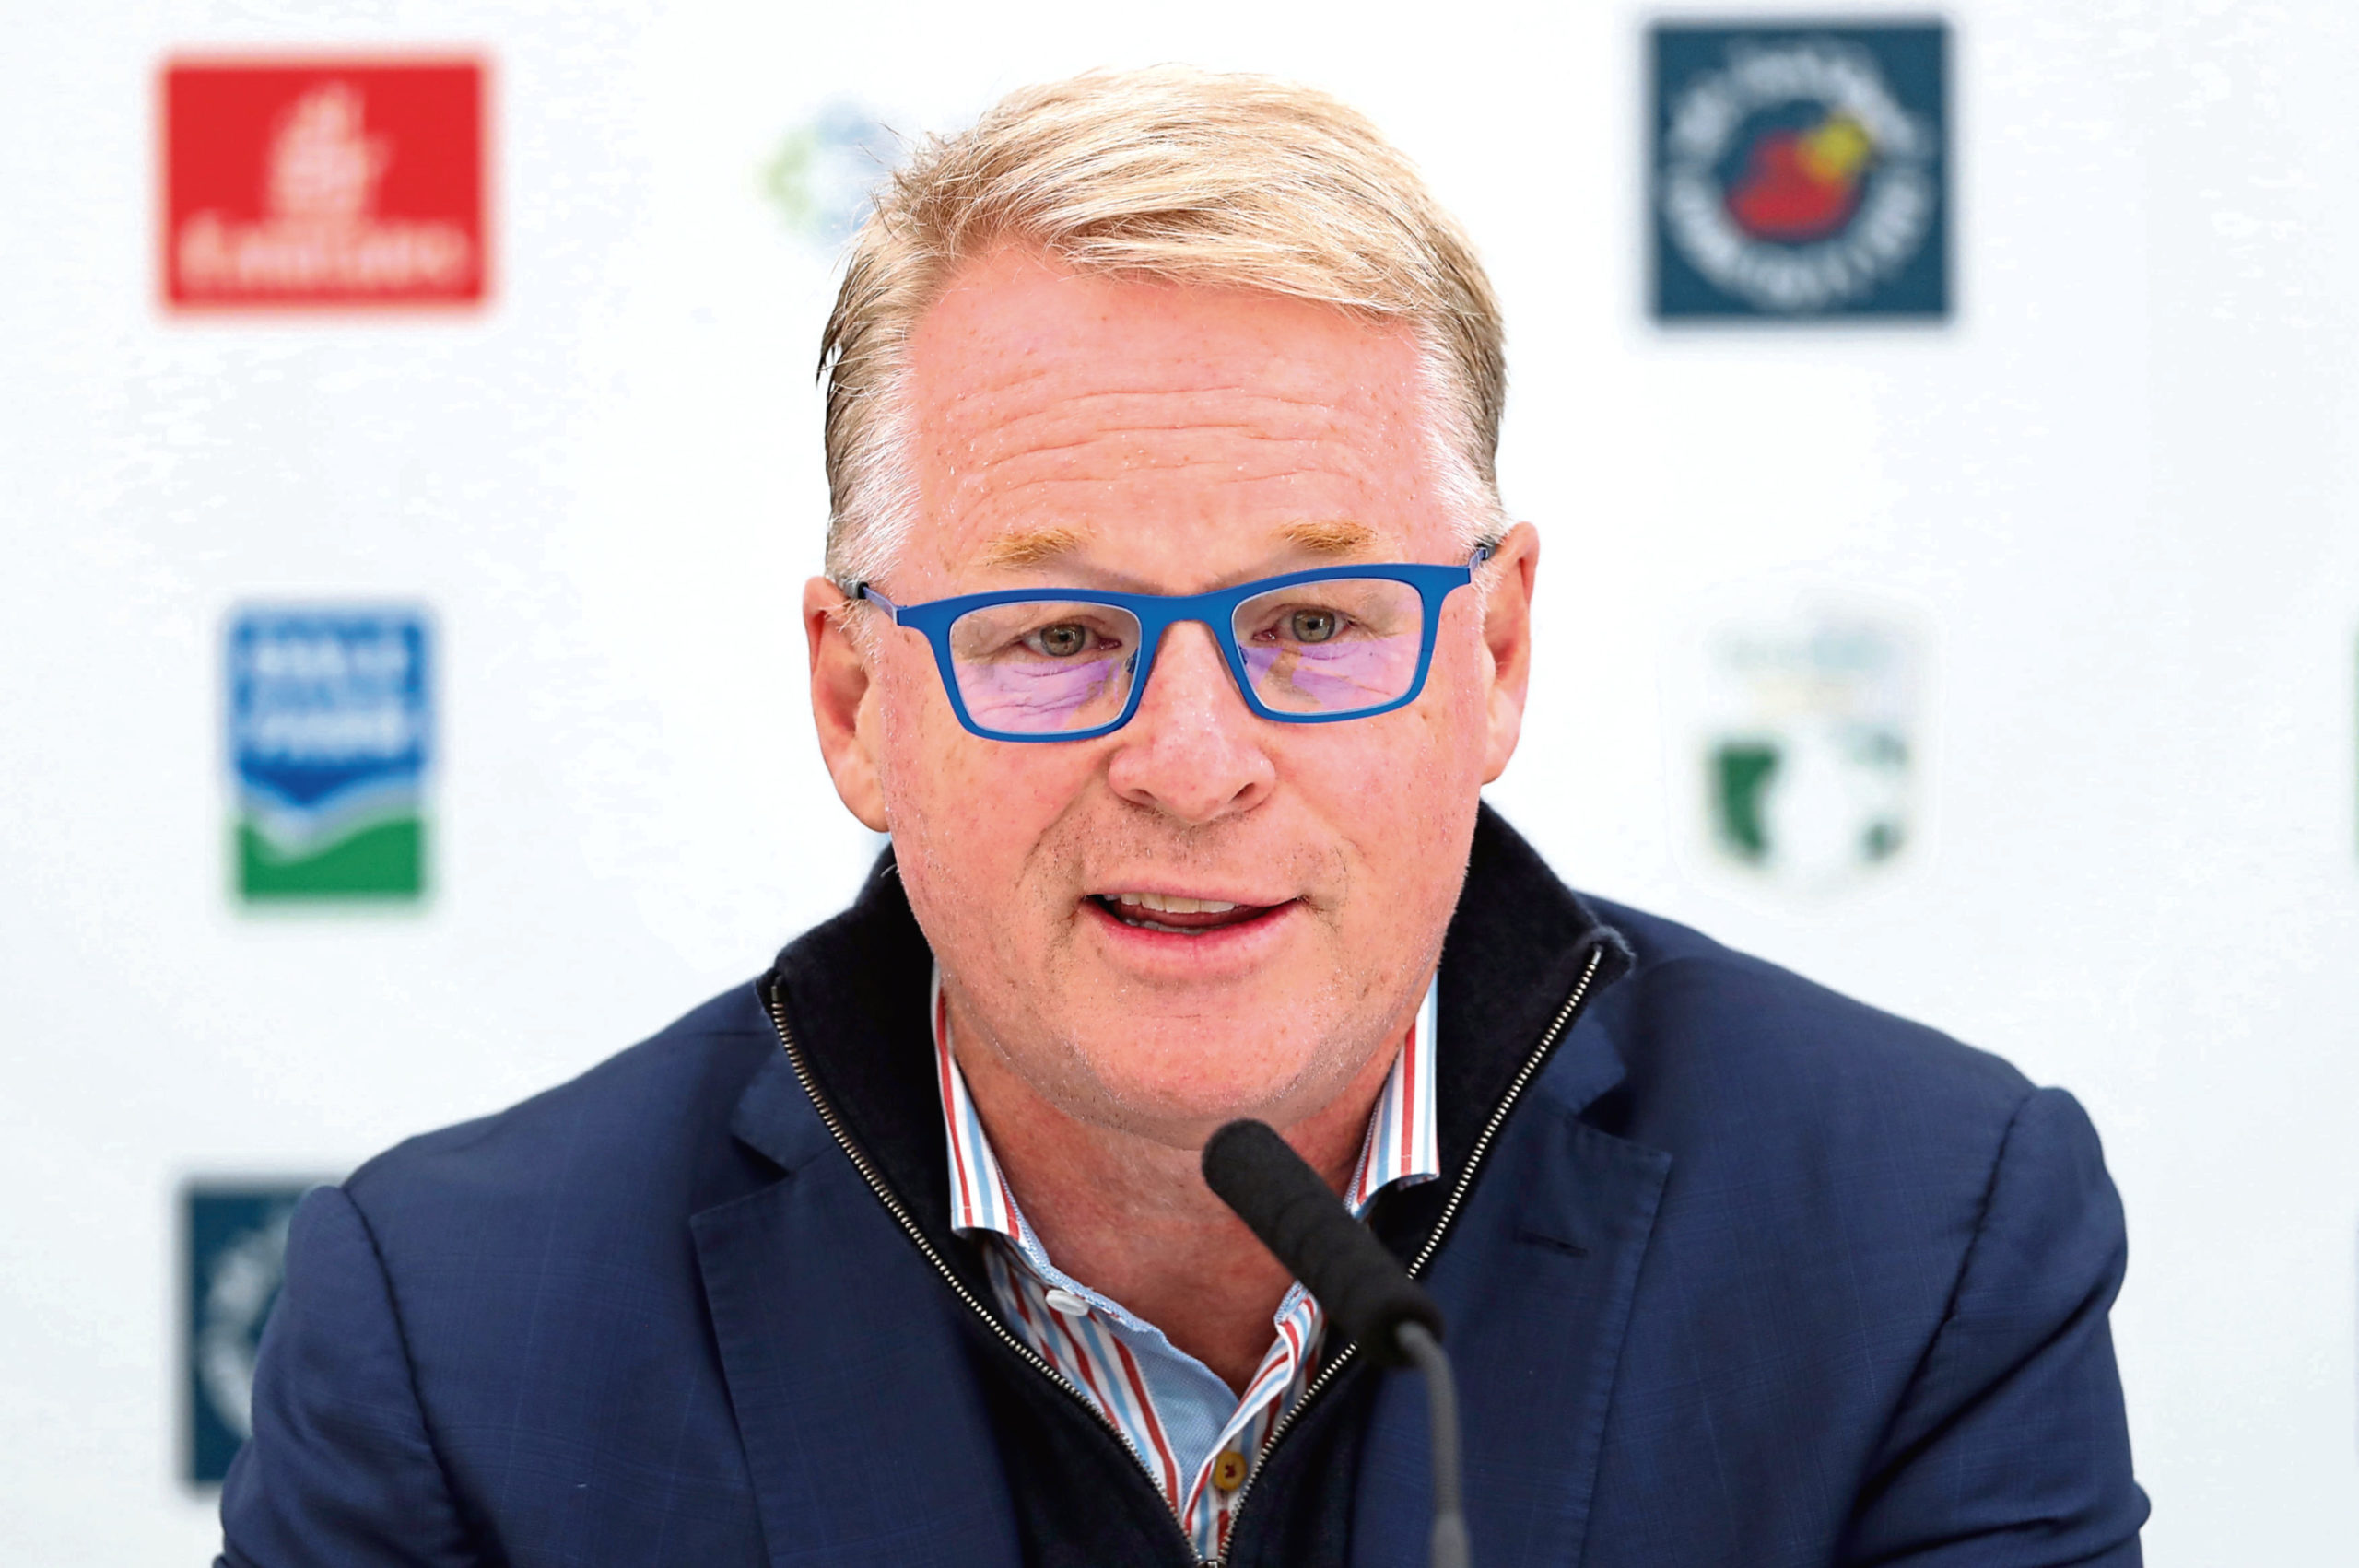 European Tour chief Keith Pelley